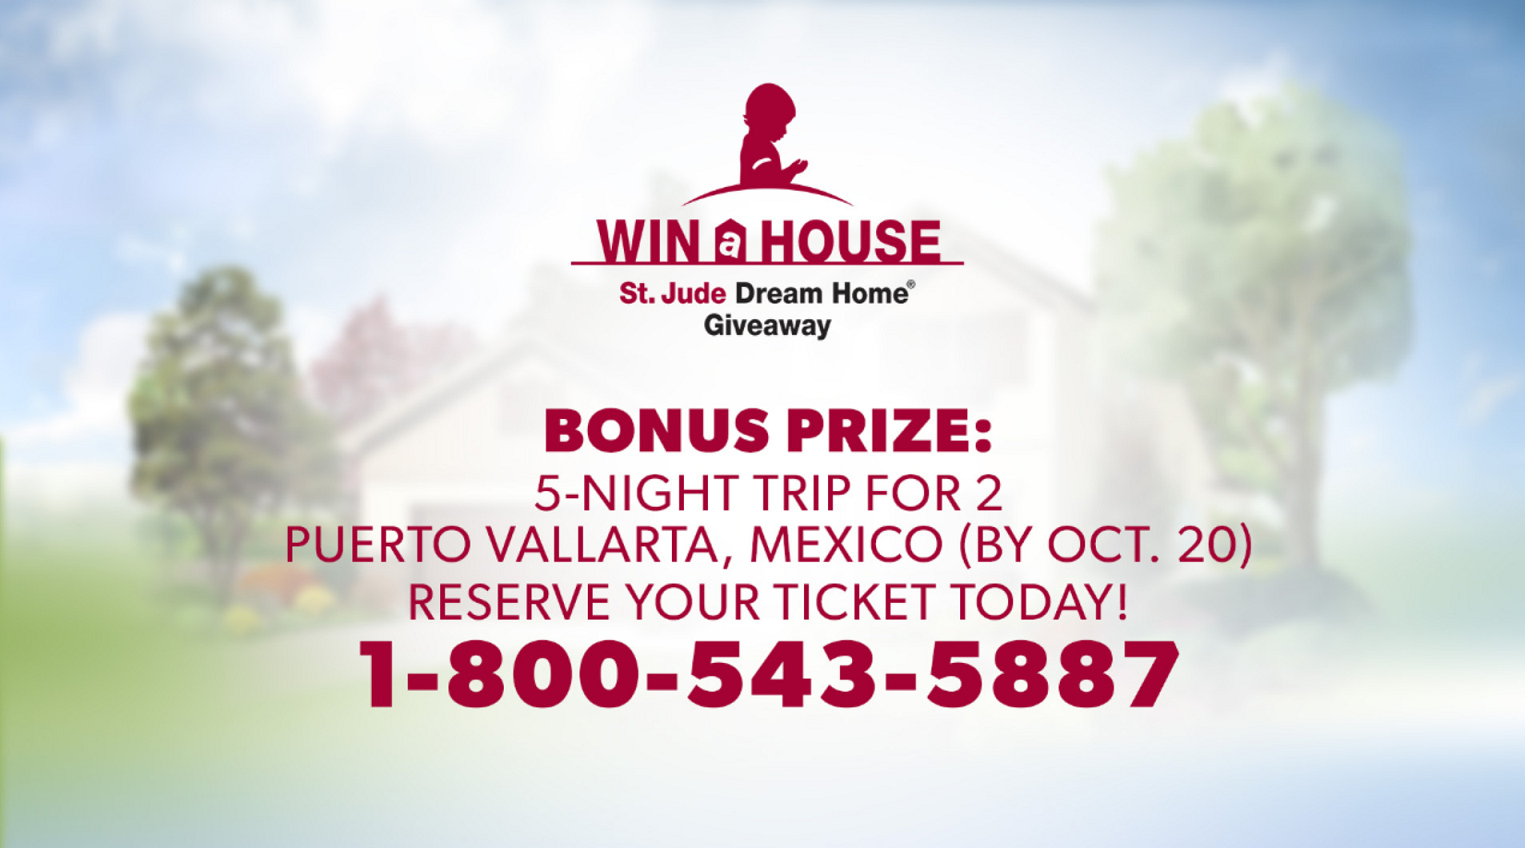 Reserve your ticket by Friday, October 20, 2017 to be entered to win the St. Jude Dream House and a 5-night trip for two to Puerto Vallarta!<p></p>